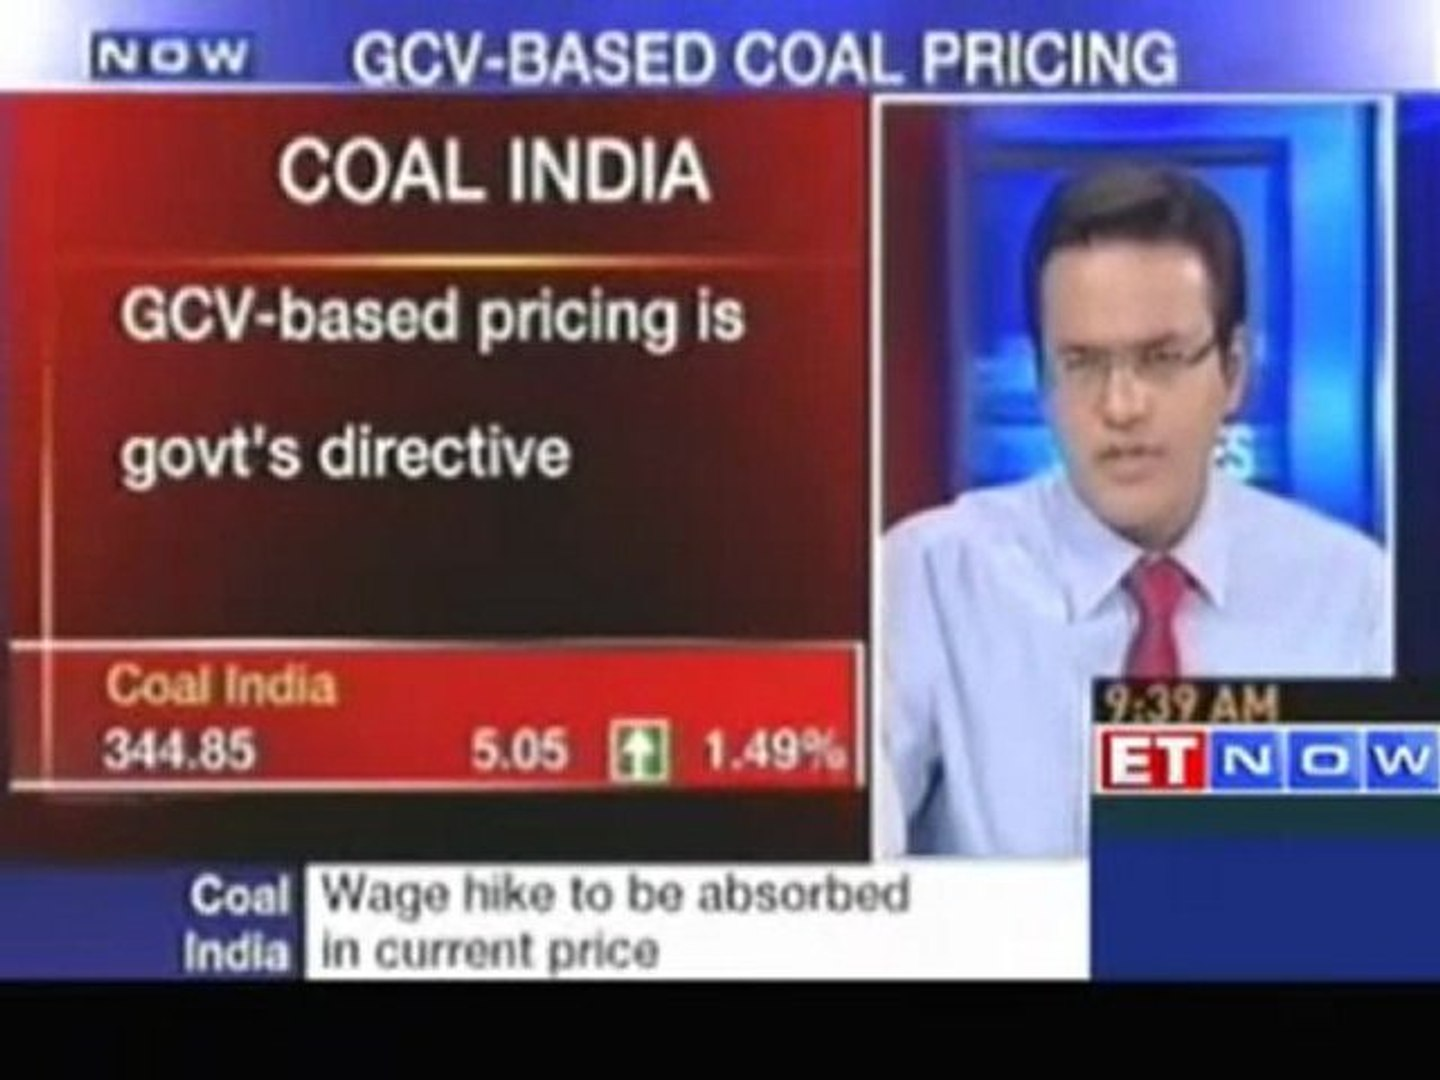 Coal India: Wage hike to be absorbed in current price